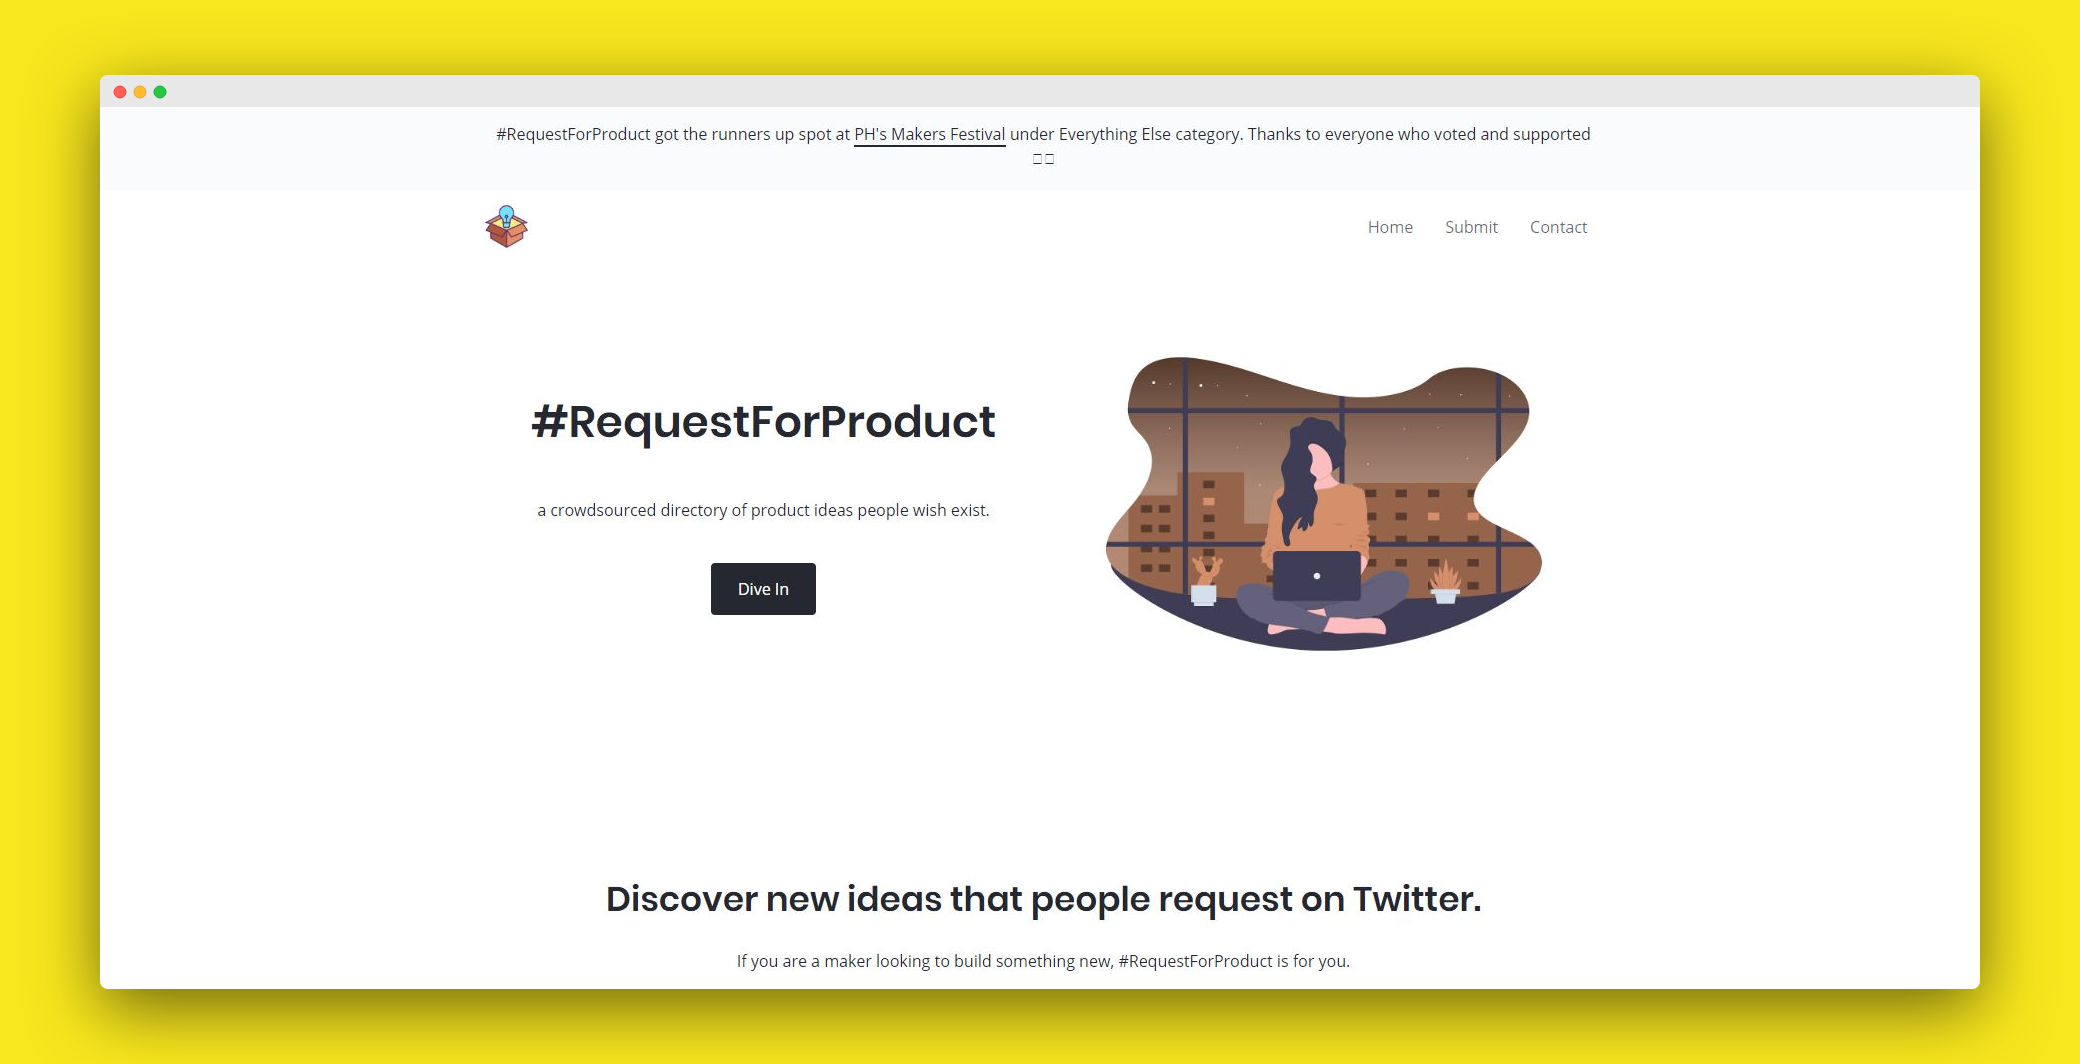 a crowdsourced directory of product ideas people wish exist